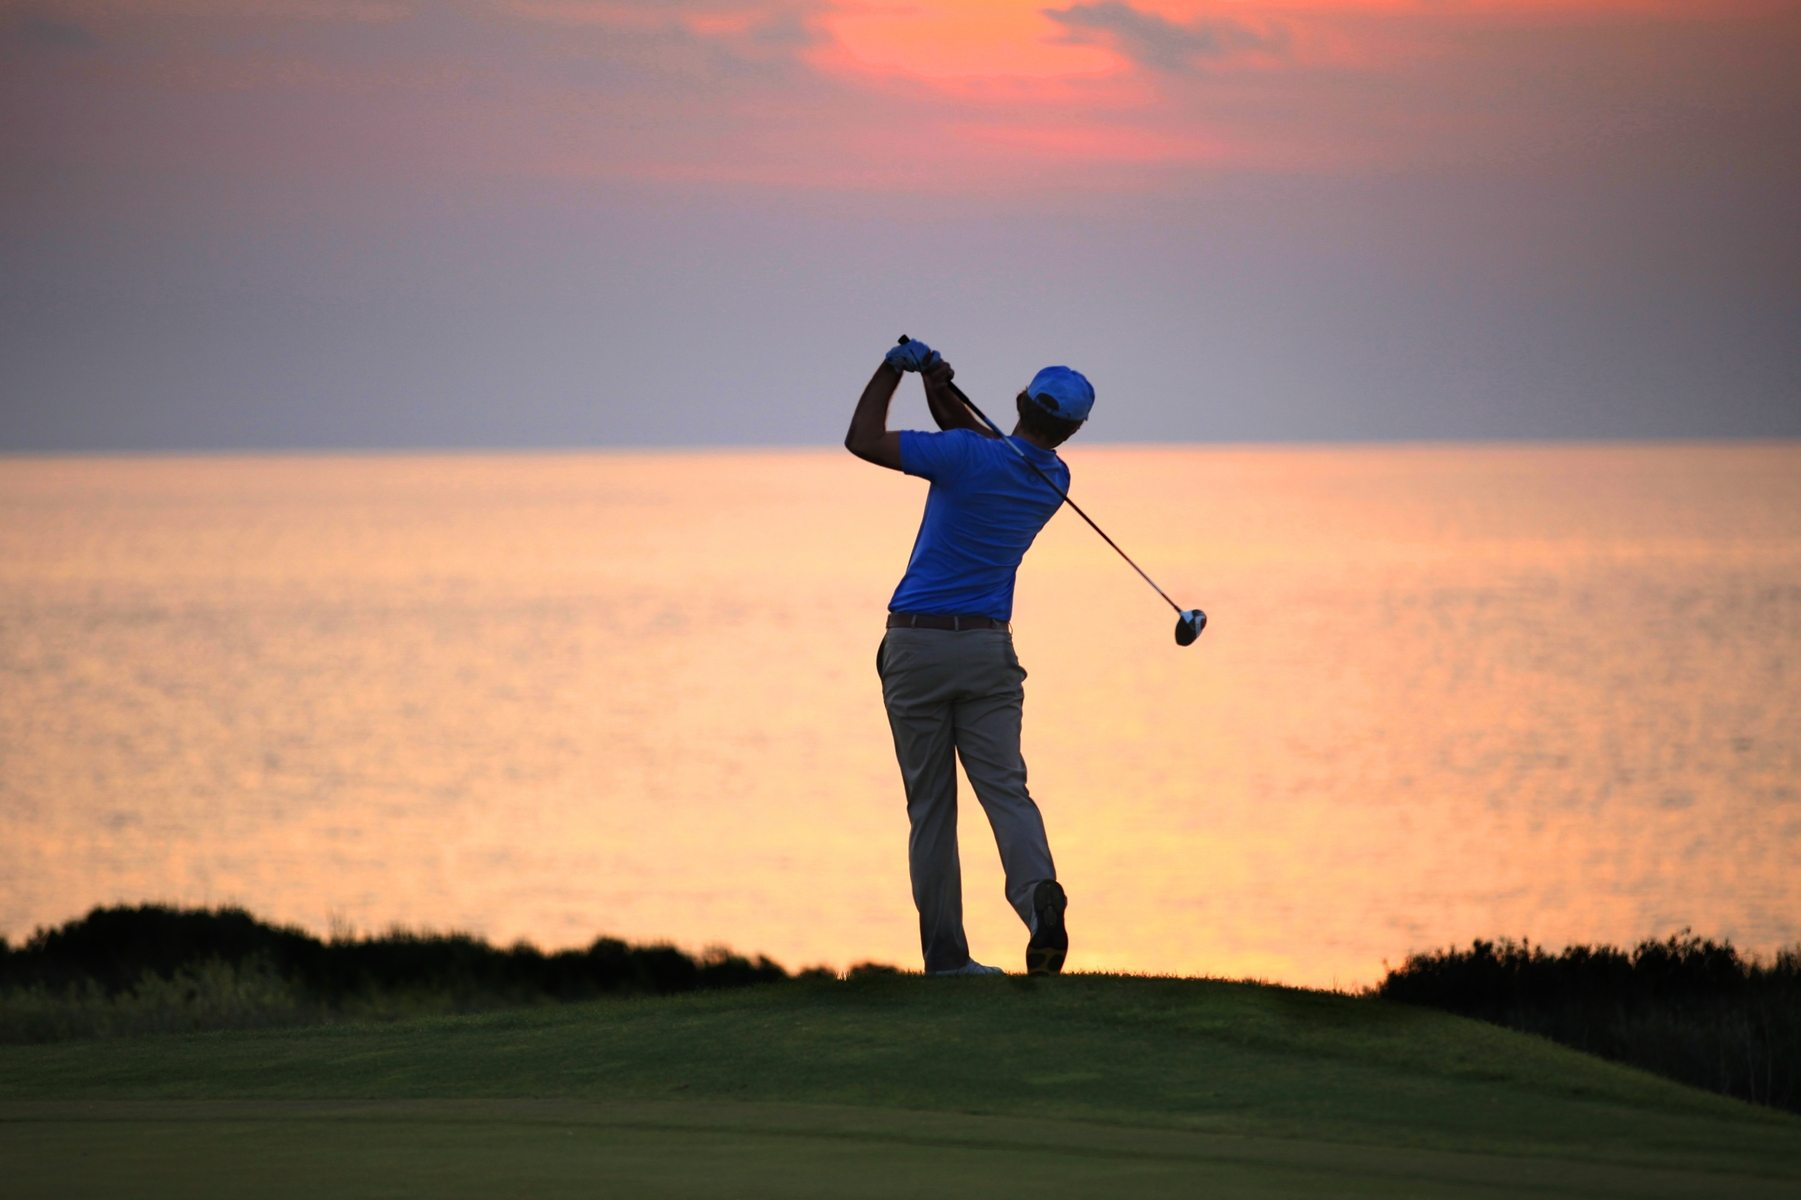 golf-player-swings-bat-while-enjoying-the-sunset-in-golf-course